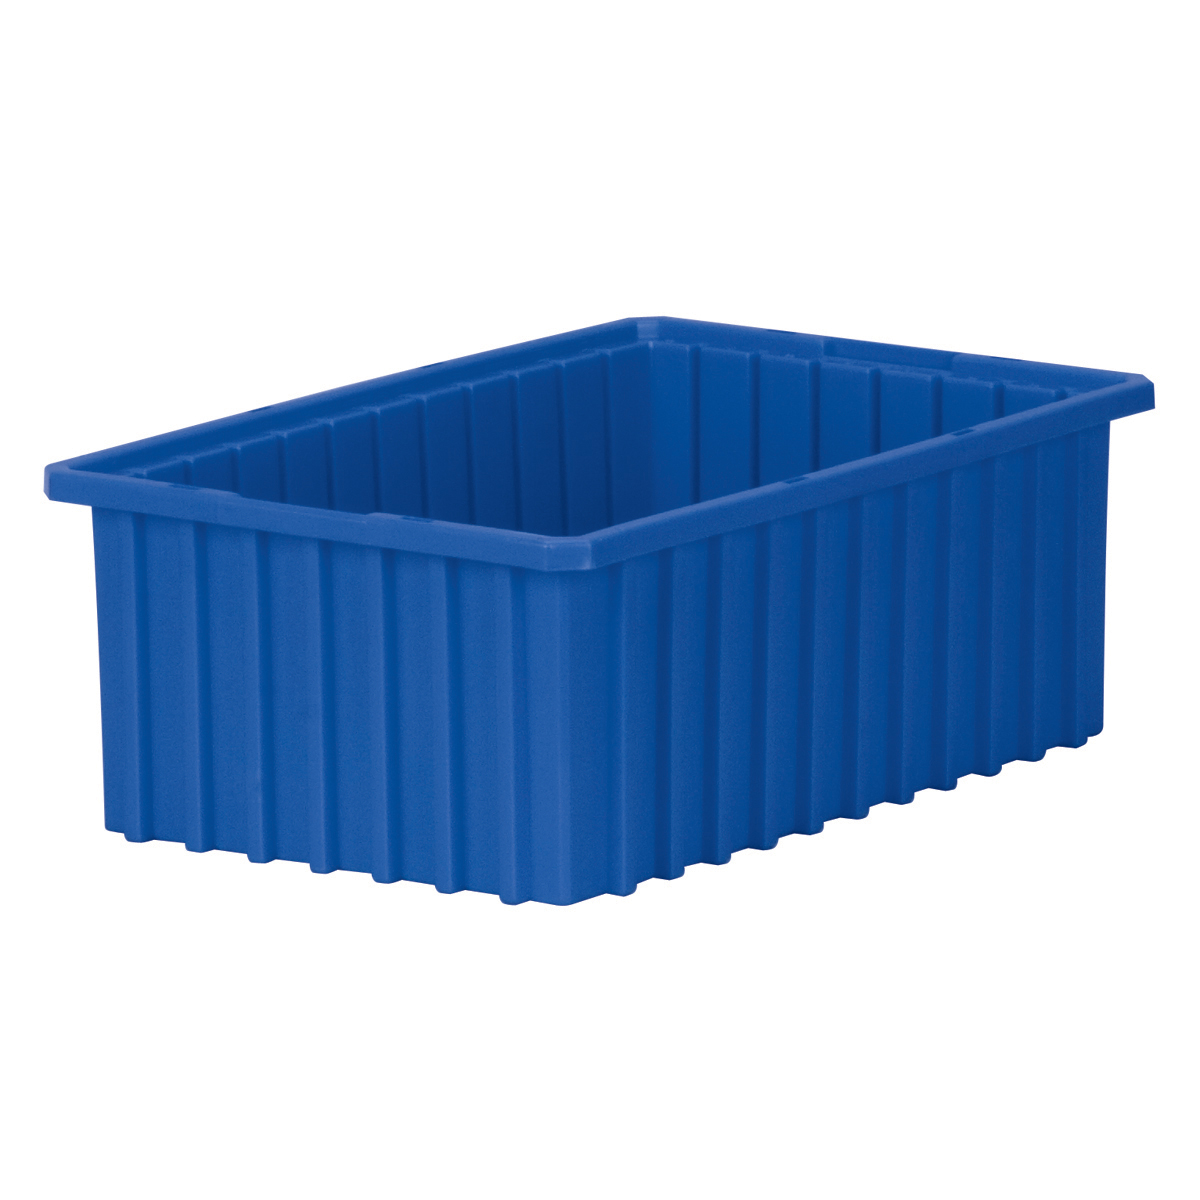 Akro-Grid Dividable Box 16-1/2 x 10-7/8 x 6, Blue (33166BLUE).  This item sold in carton quantities of 8.